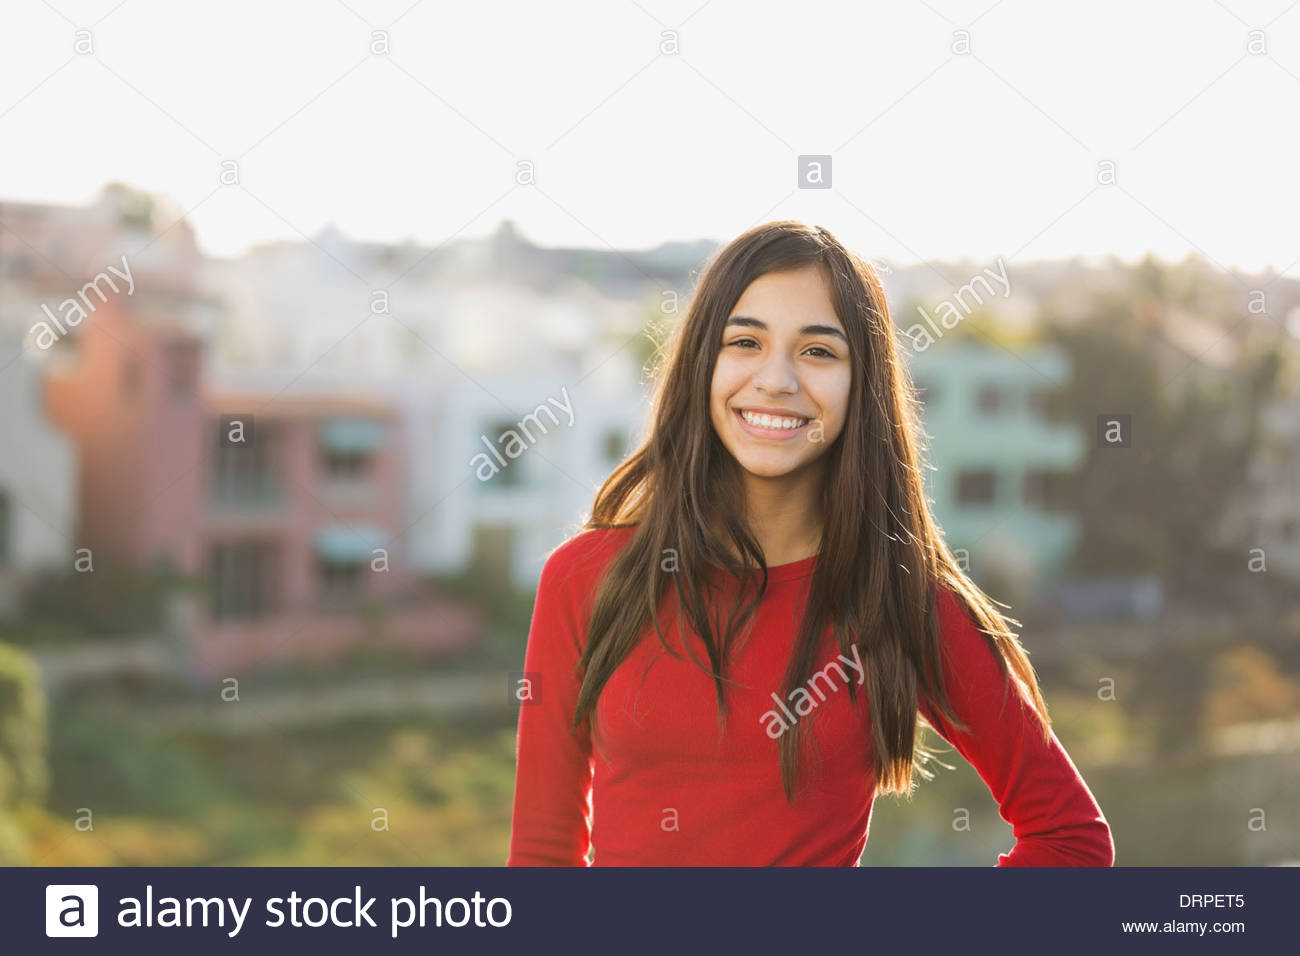 Portrait of girl standing outdoors - Stock Image